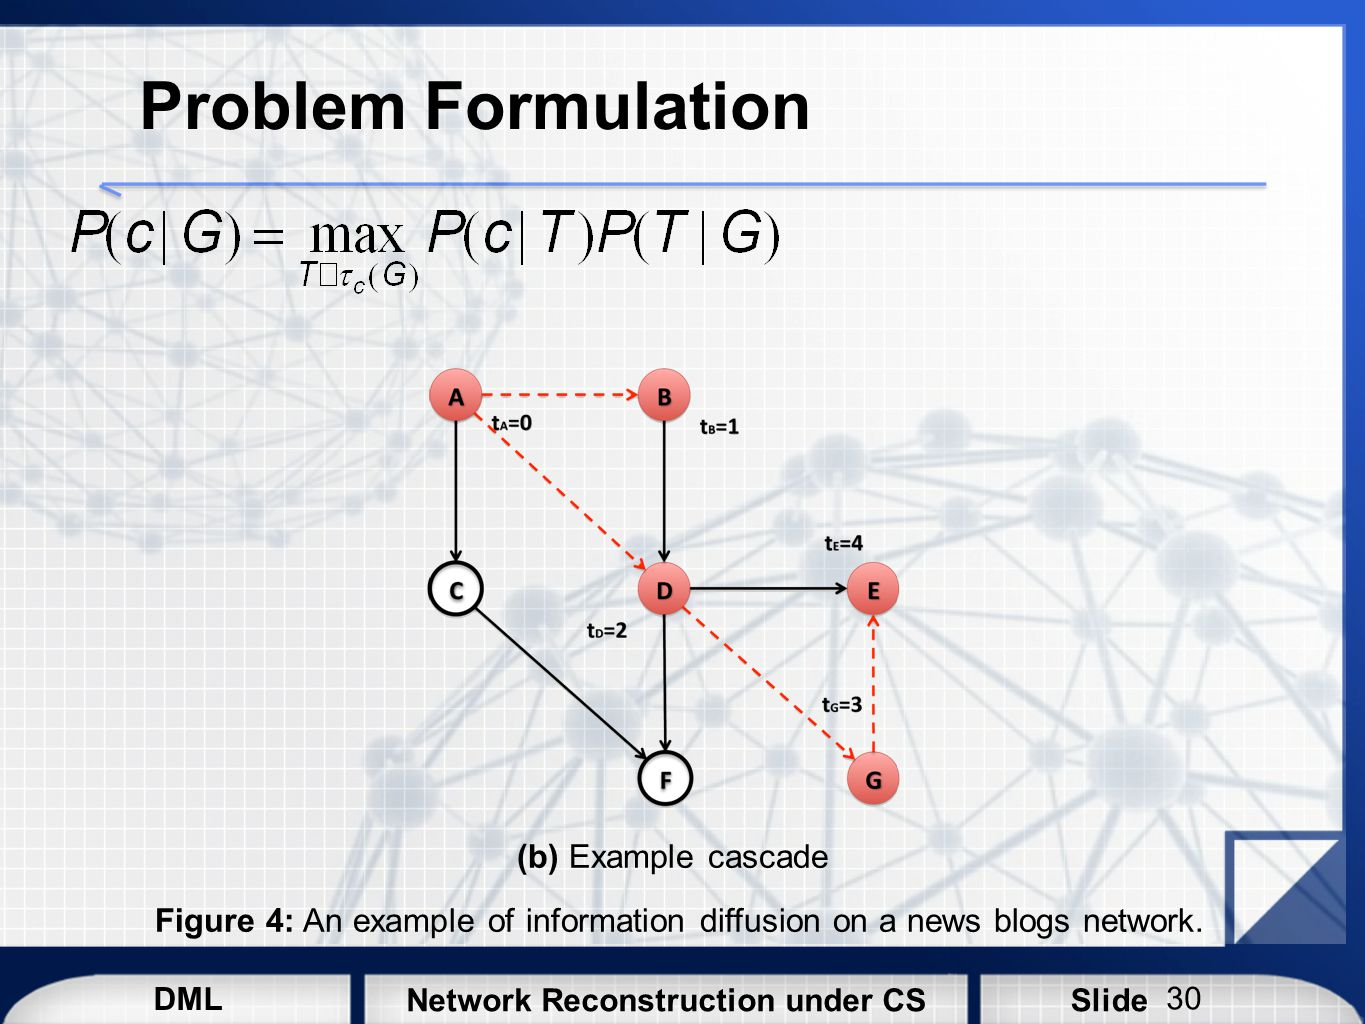 Problem Formulation (b) Example cascade